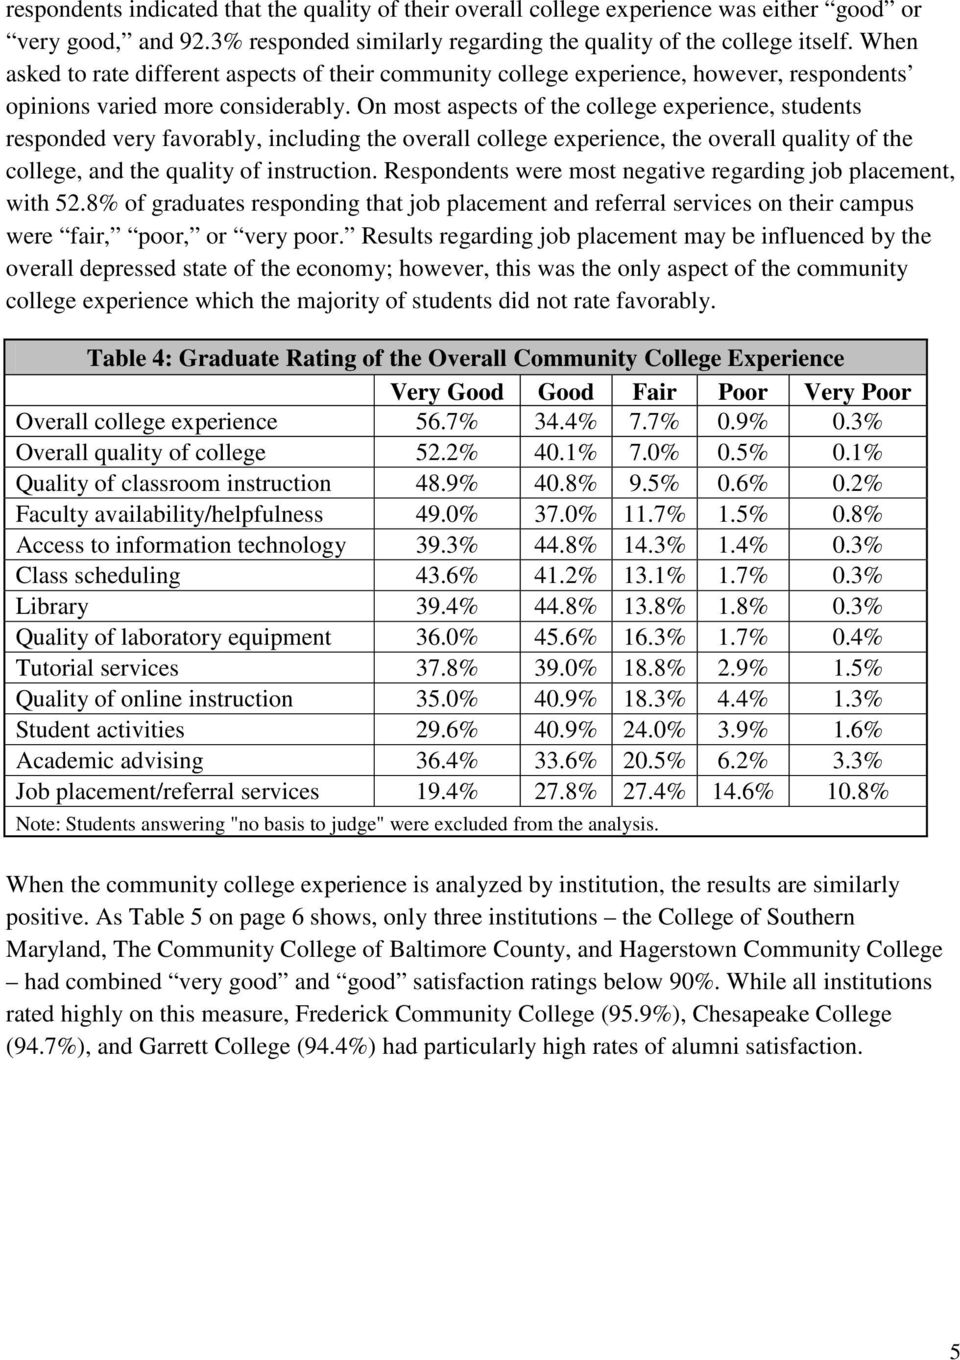 On most aspects of the college experience, students responded very favorably, including the overall college experience, the overall quality of the college, and the quality of instruction.